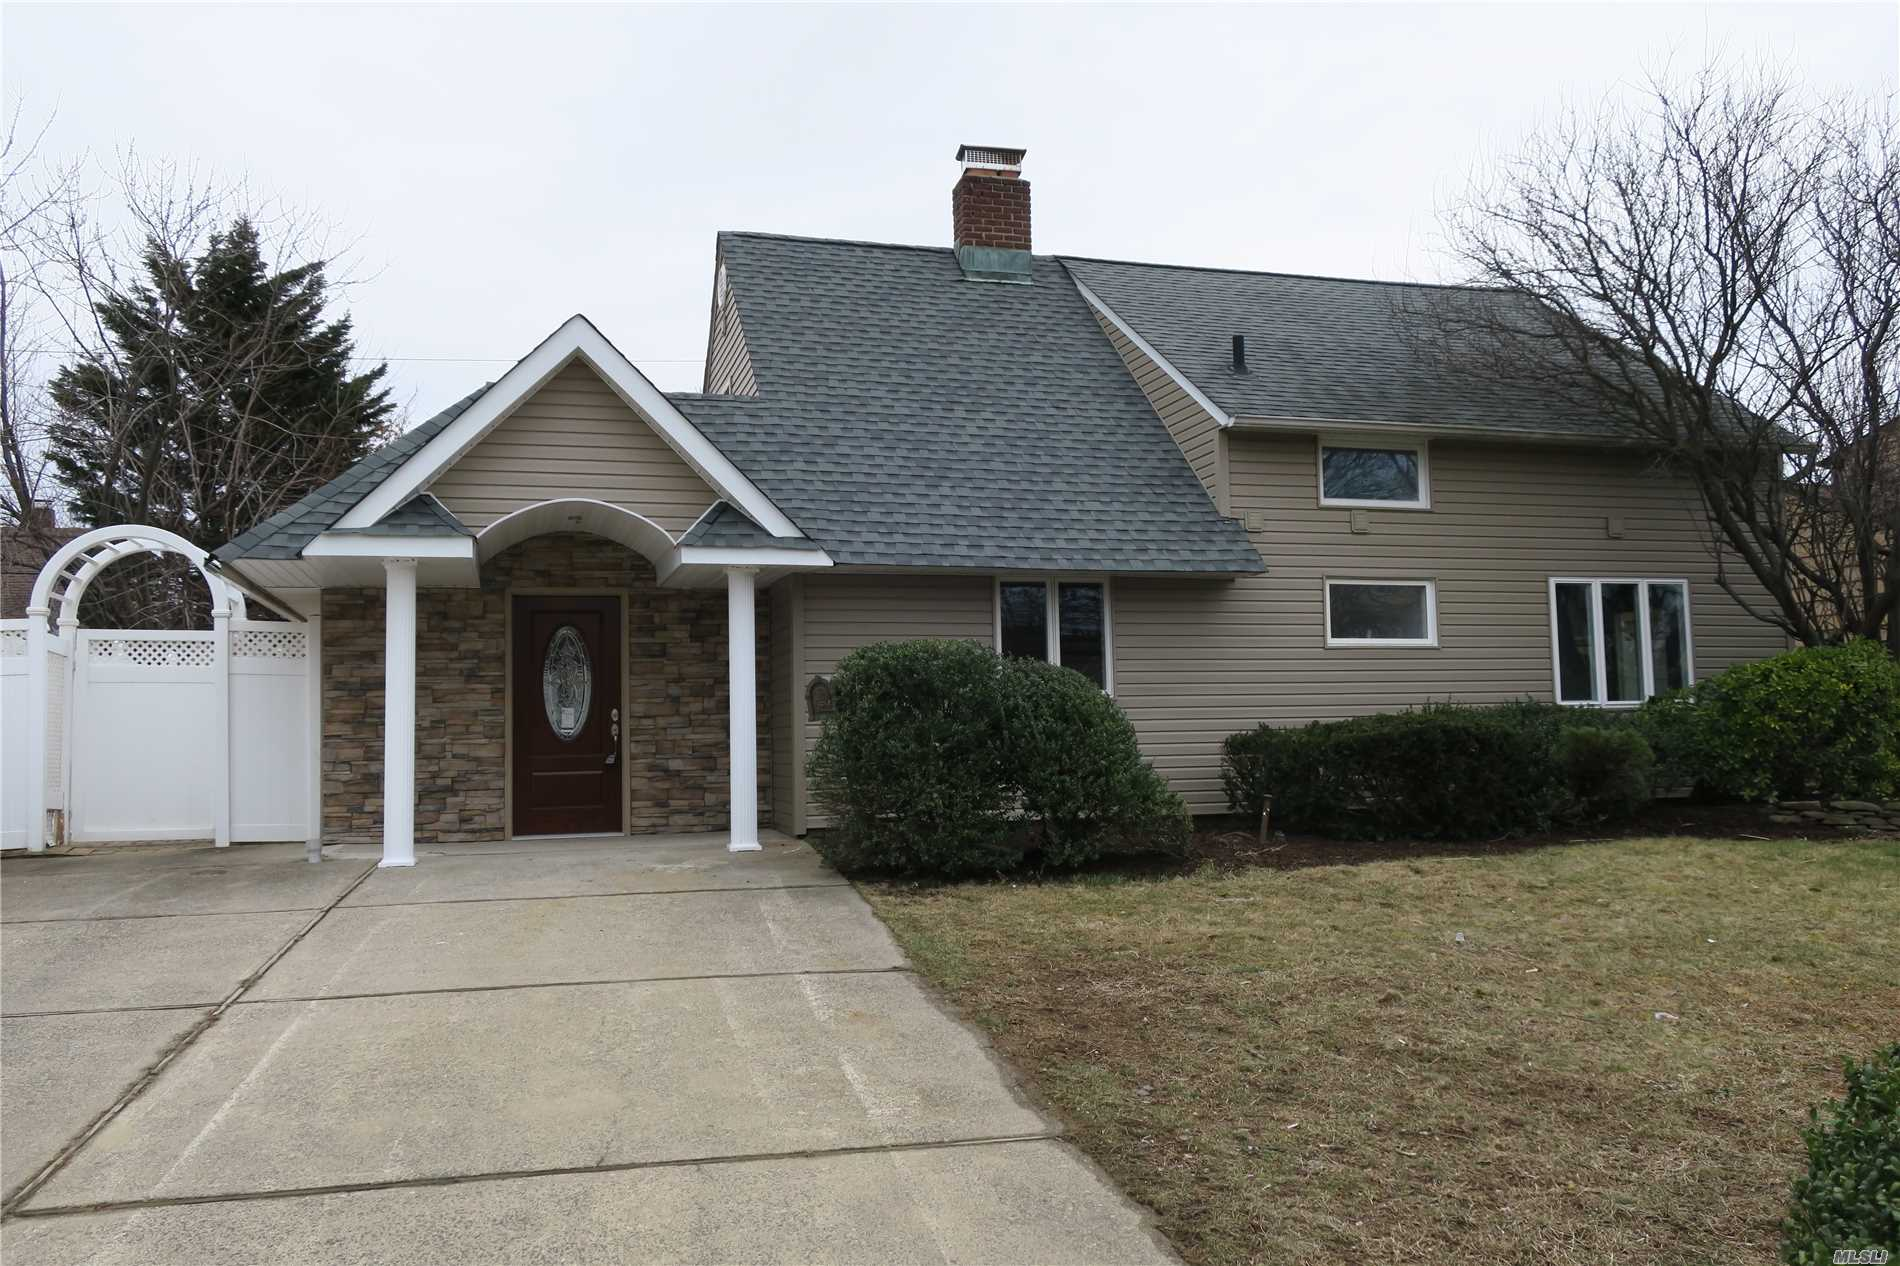 Total Renovated 1680 Sq. Ft. 4 Bedroom 2 Bathrooms, All New Roof, Siding, Windows, Heat, Kitchen, Bathrooms, Porcelain Floors, Electric And Plumbing. Kitchen W/Quartz Counter Countertops, S/S Appliances, Farm Sink, Stacked Stone Fireplace, Master Bedroom On First Floor Vaulted With Walk In Closet. Extra Large Fenced In Backyard, Covered Patio, Island Tree Schools, Taxes Do Not Reflect Star Savings Of $1689.